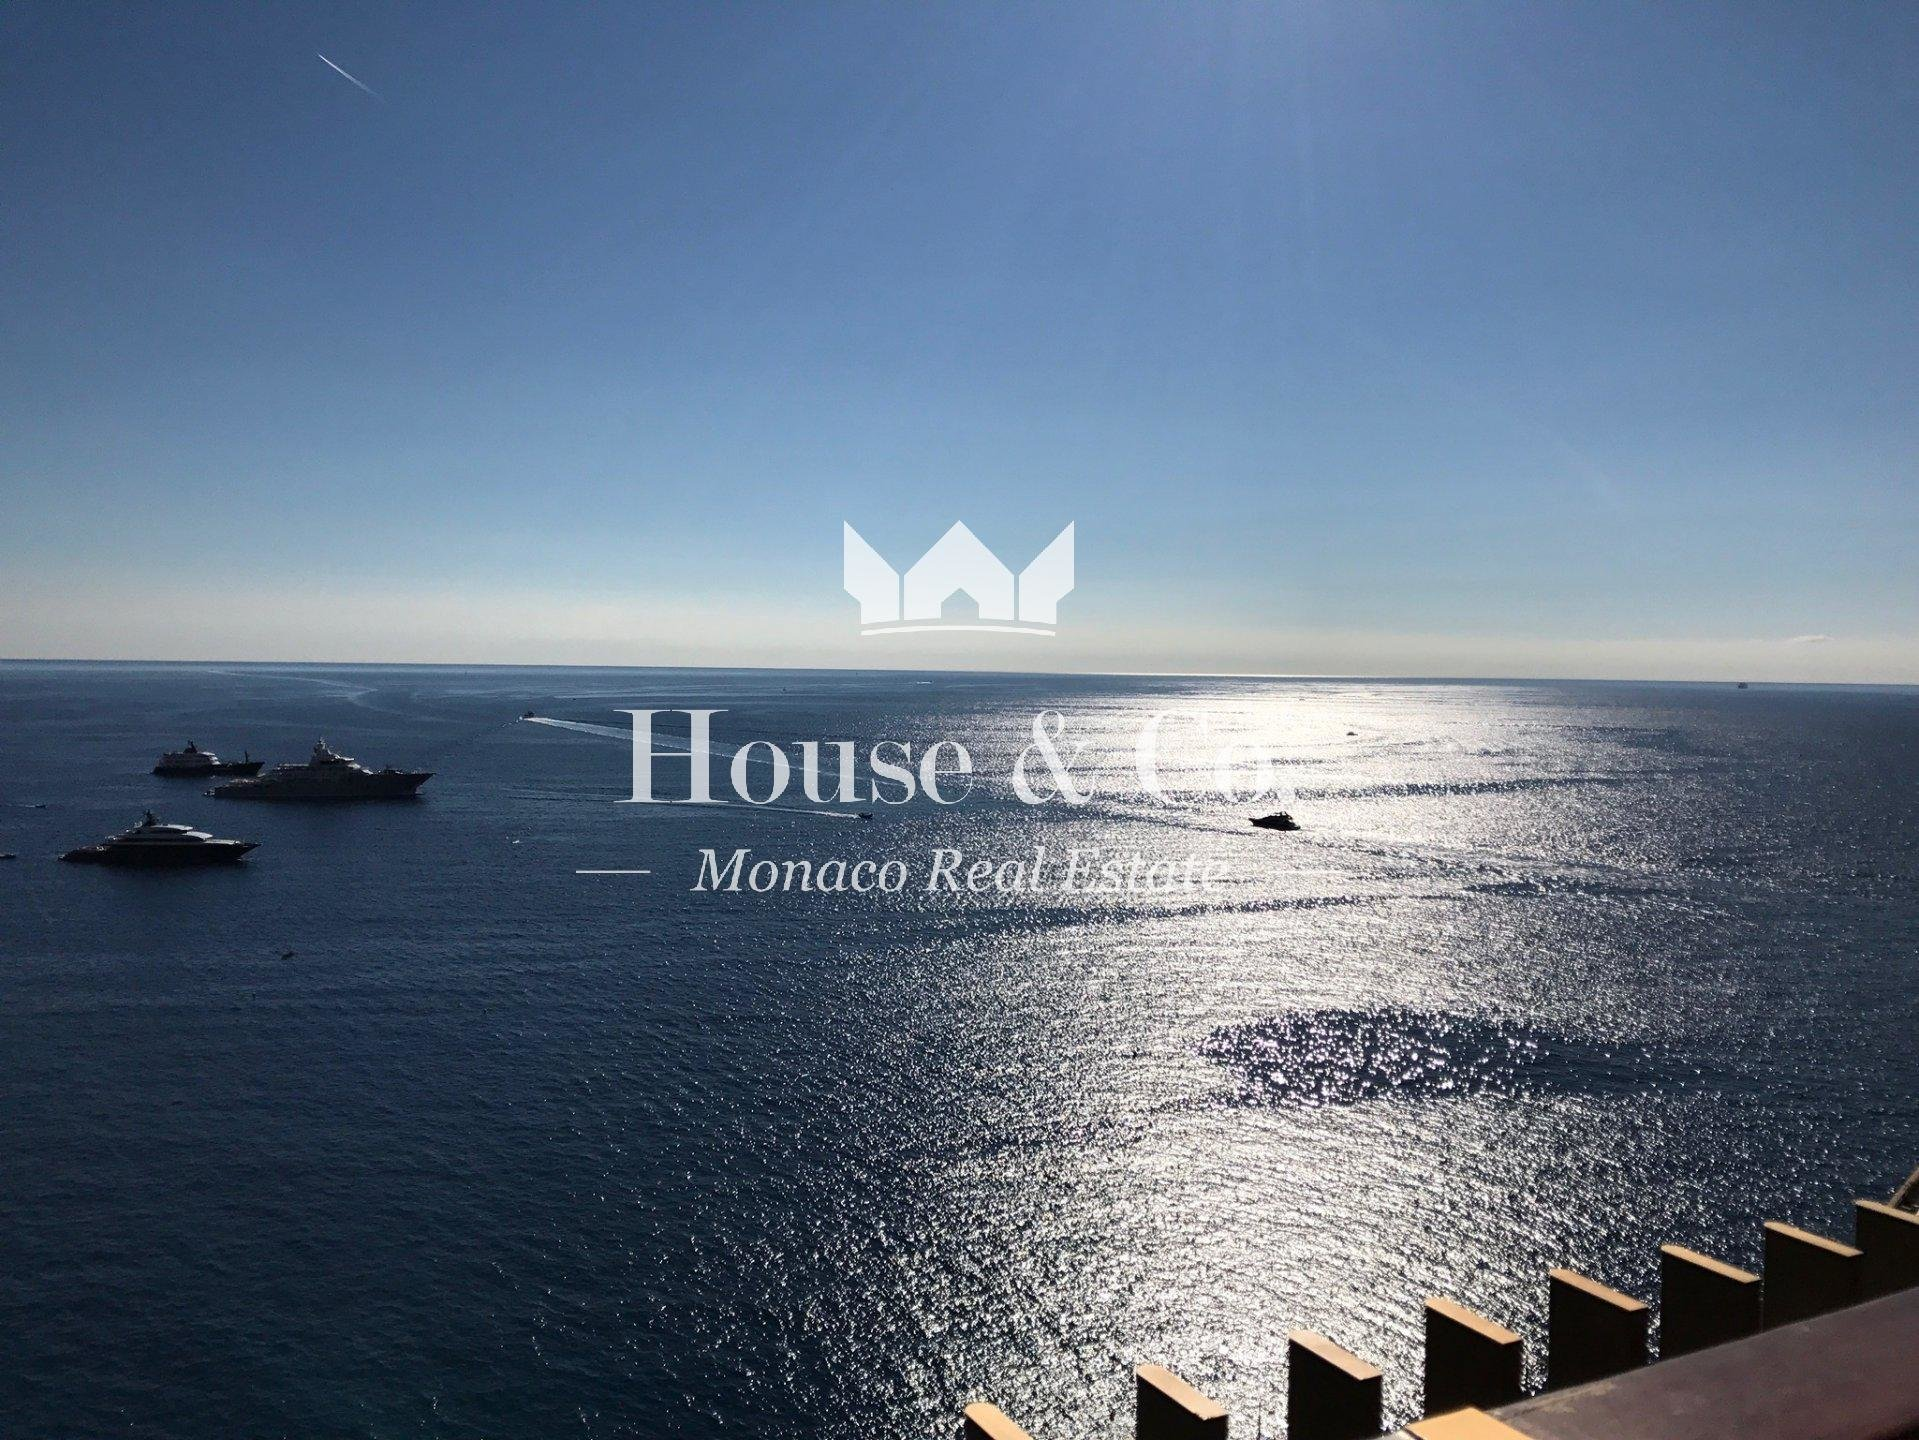 3 BEDROOM APARTMENT WITH PANORAMIC SEA VIEW IN THE CENTER OF MONACO